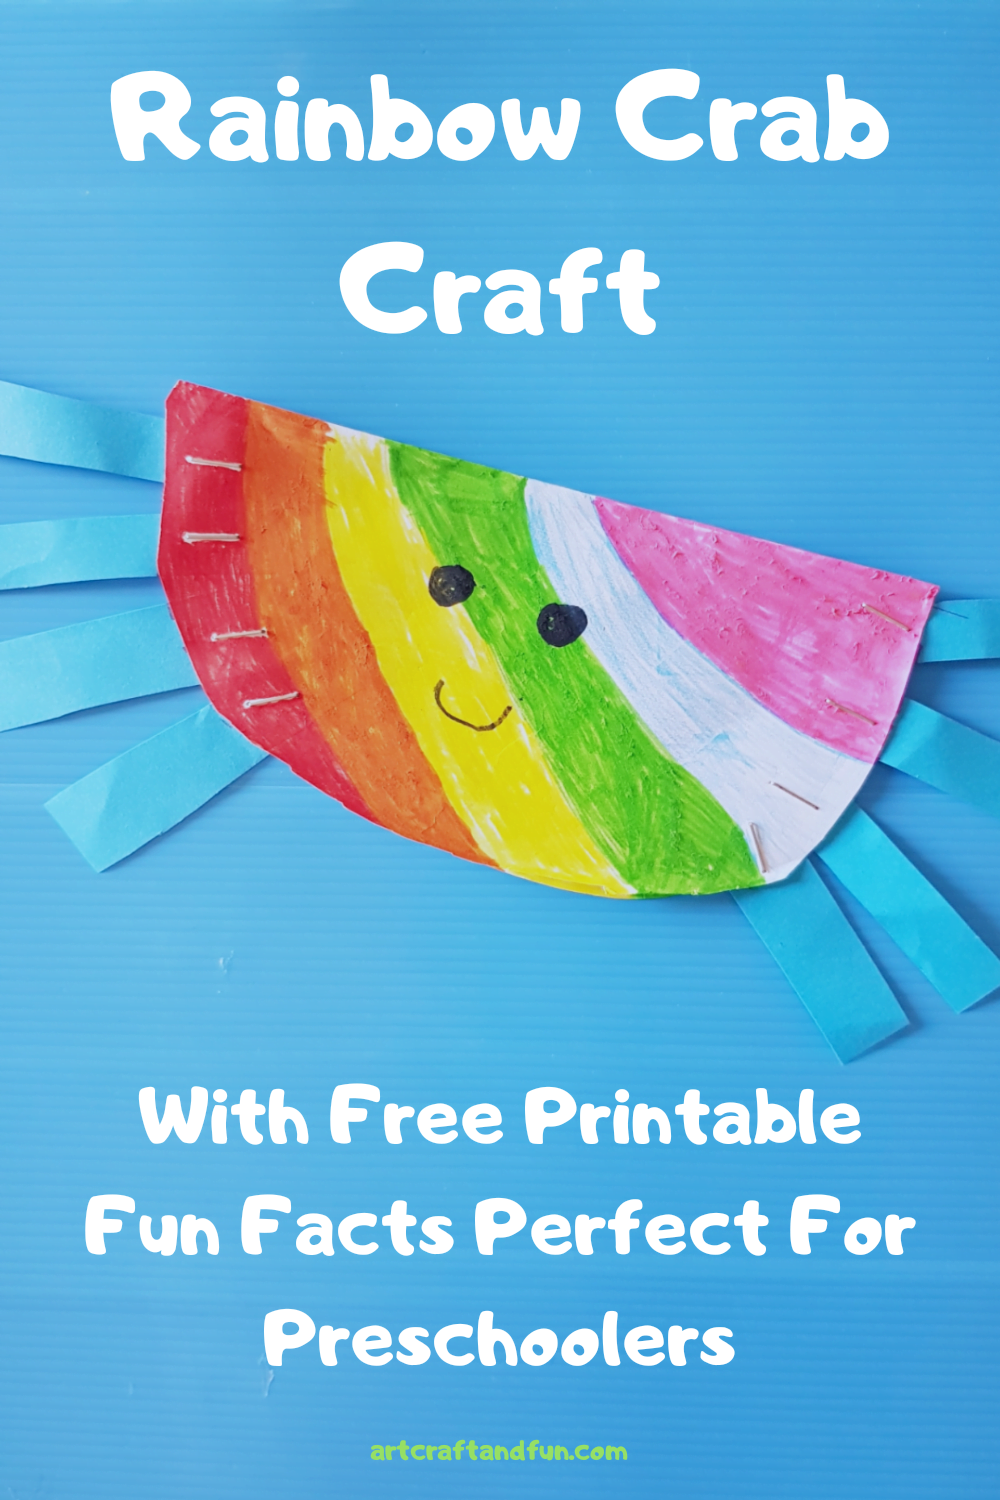 Rainbow Crab Craft For Preschoolers